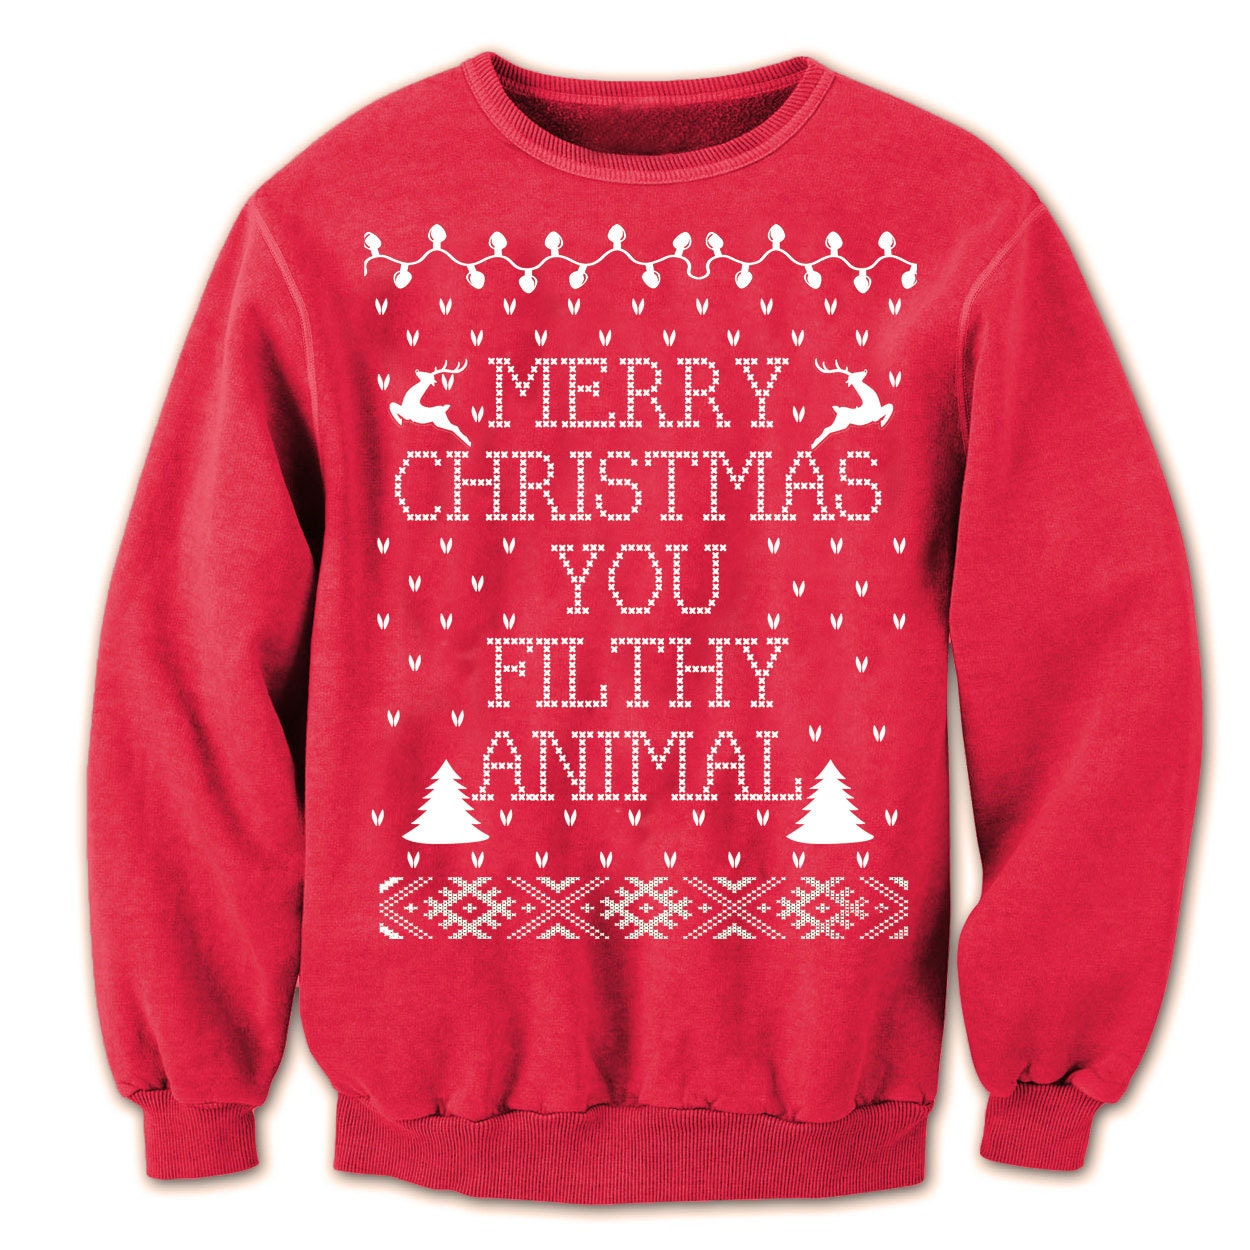 Ugly Christmas Sweater Merry CHRISTMAS Ya FILTHY Animal - you funny retro movie xmas ugly sweater contest party humorous new - Womens Unisex